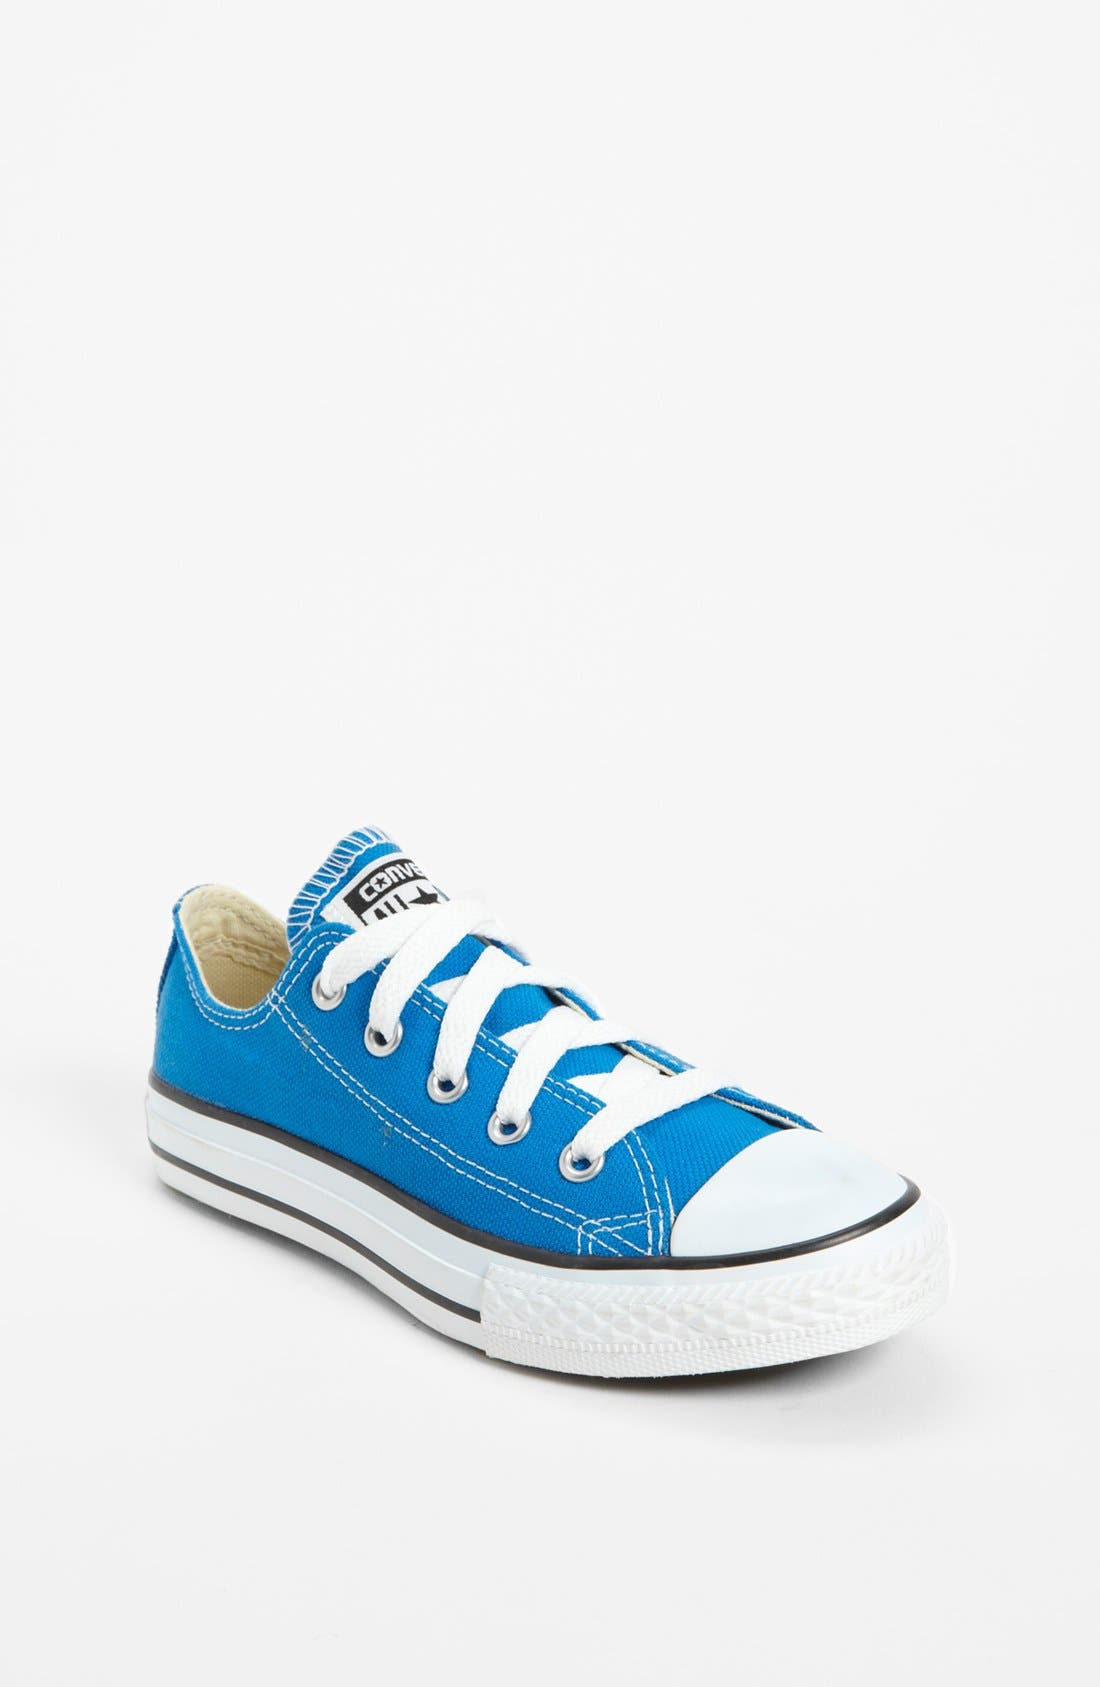 Main Image - CONVERSE ALL STAR SNEAKER